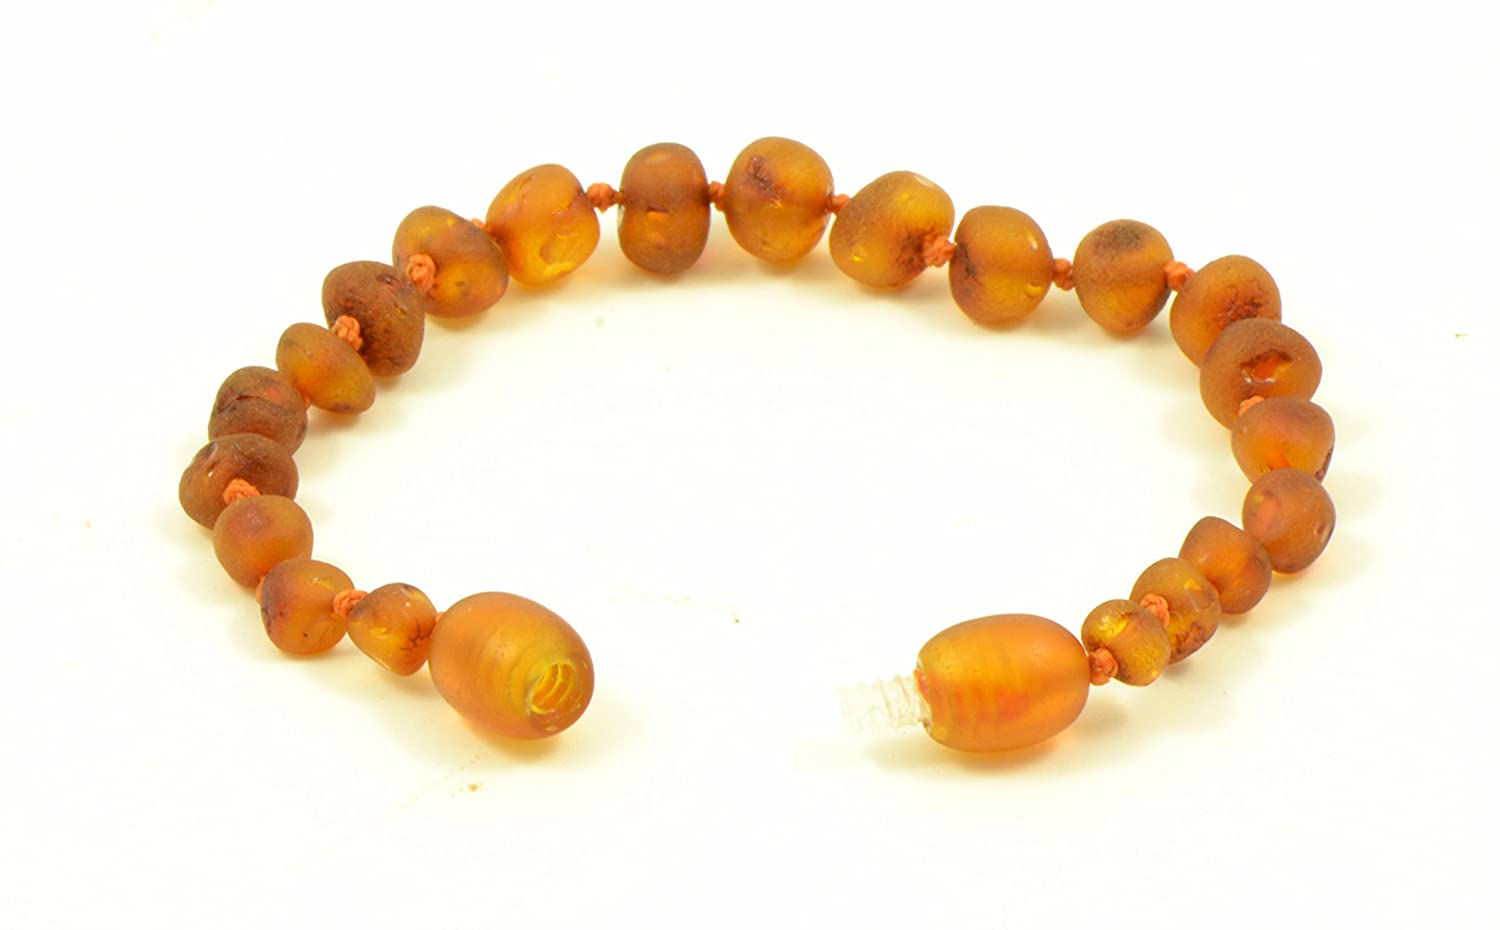 Amber Teething Bracelet Knotted Unpolished Amber Hand-Made 12cm Anti-Inflammatory Raw Cognac, 4.7 in Various Sizes Amber teething Anklet for Baby Genuine Raw Baltic Amber Bead Anklet